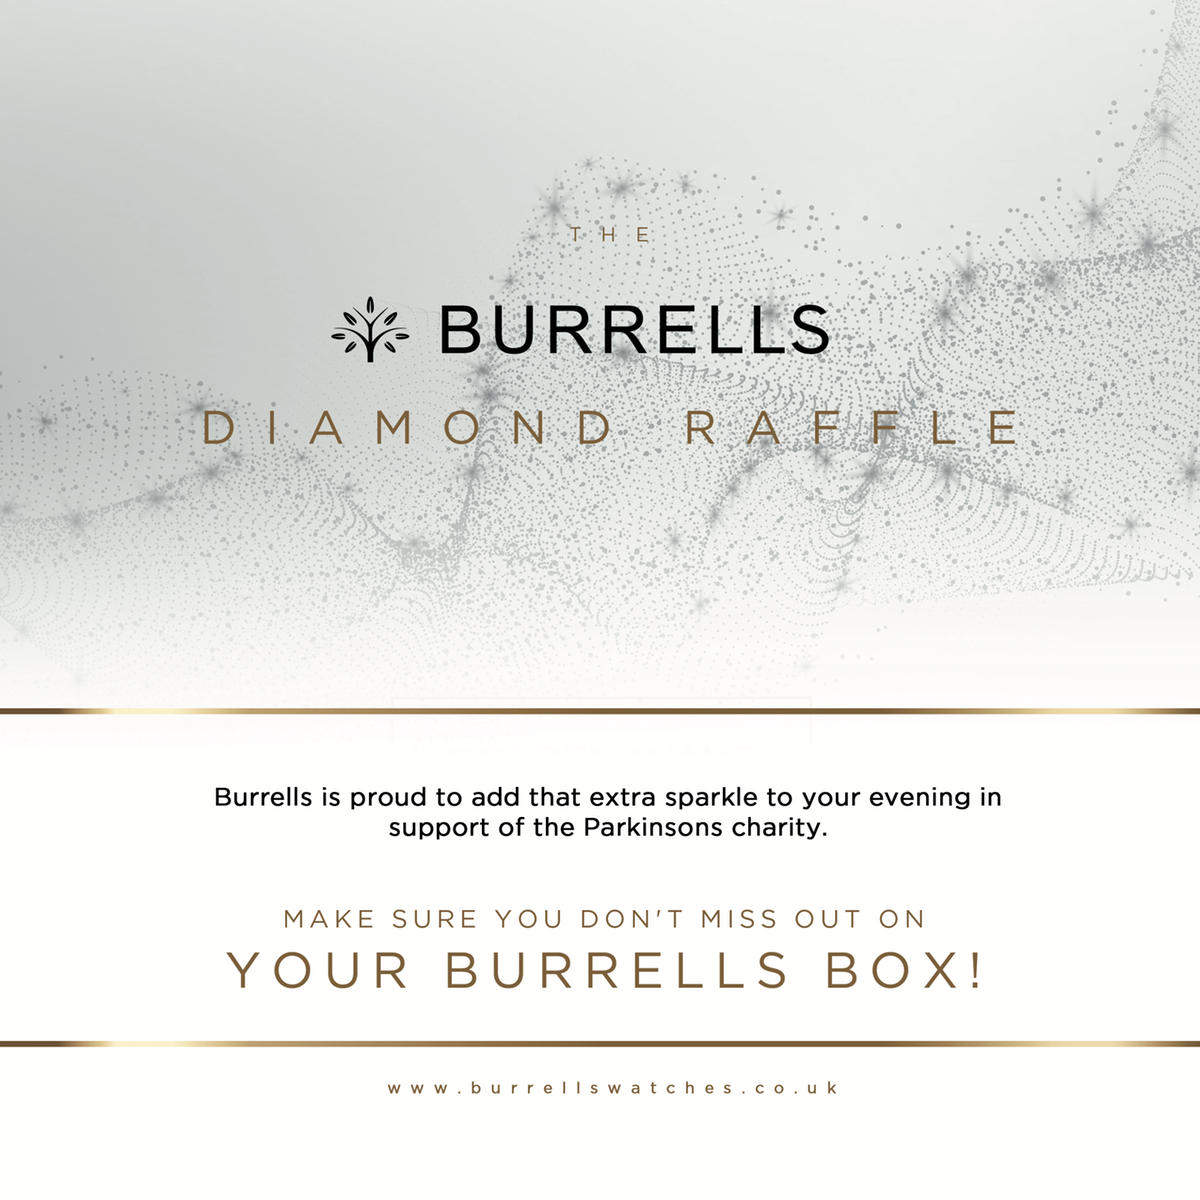 Advert for a Charity Ball